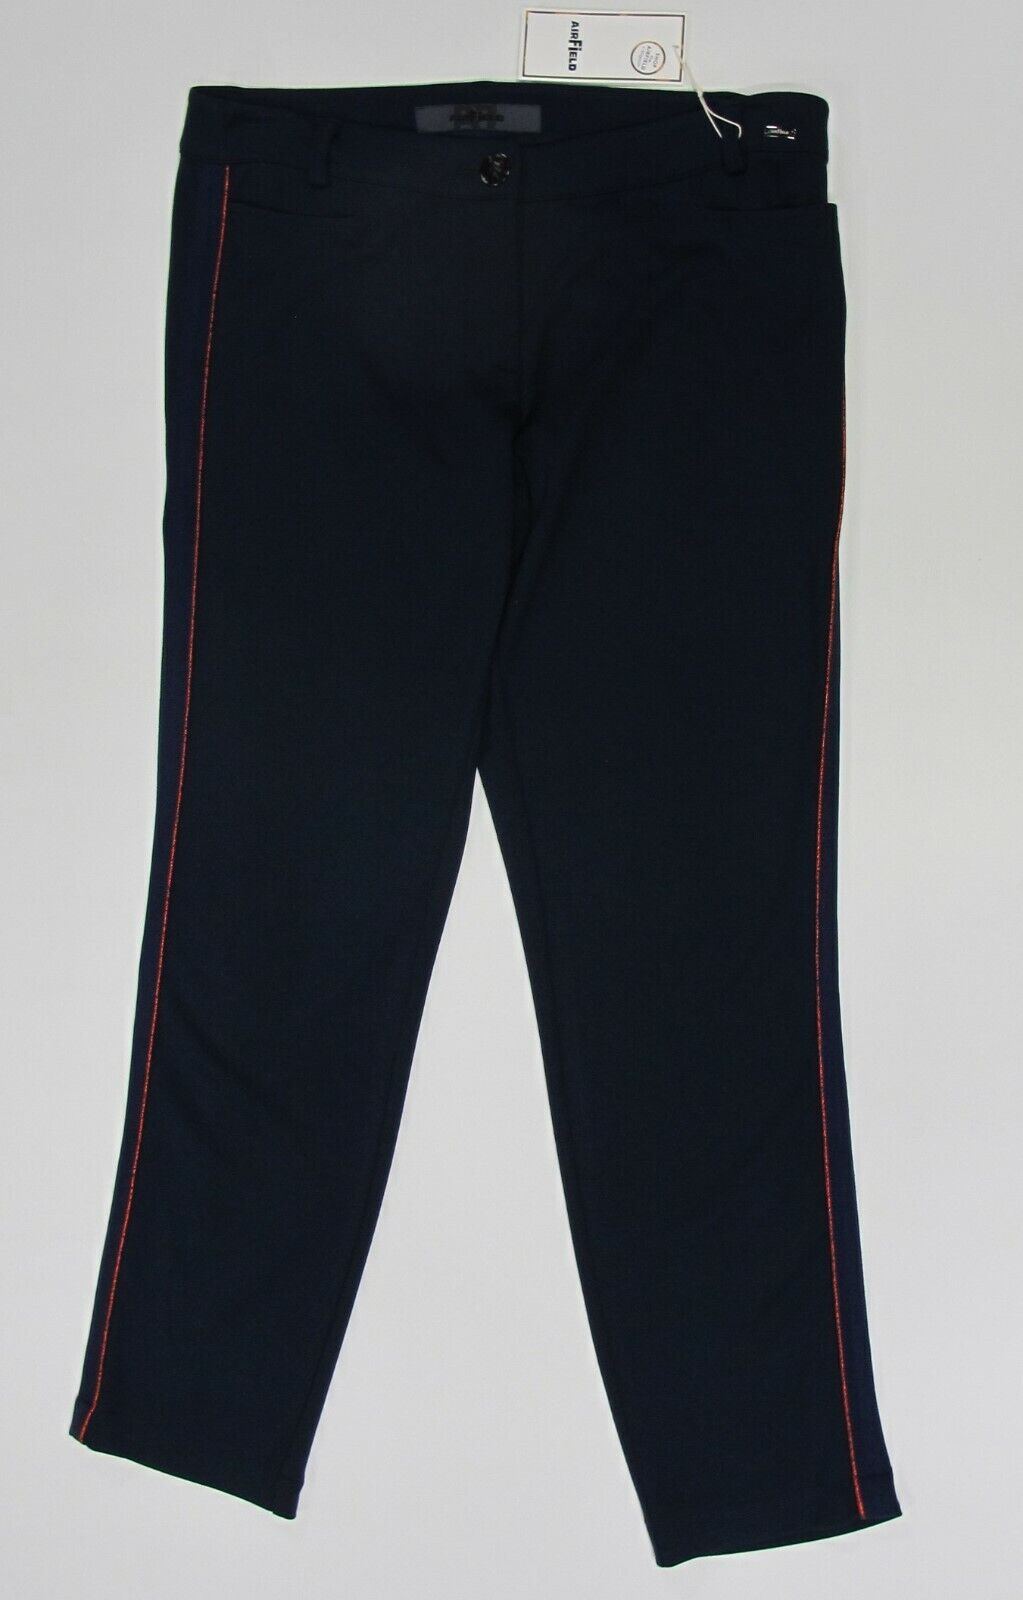 Airfield Hose PK-508 Trousers, blue-red Gr. 38, 42, 44,46 UVP 179,00